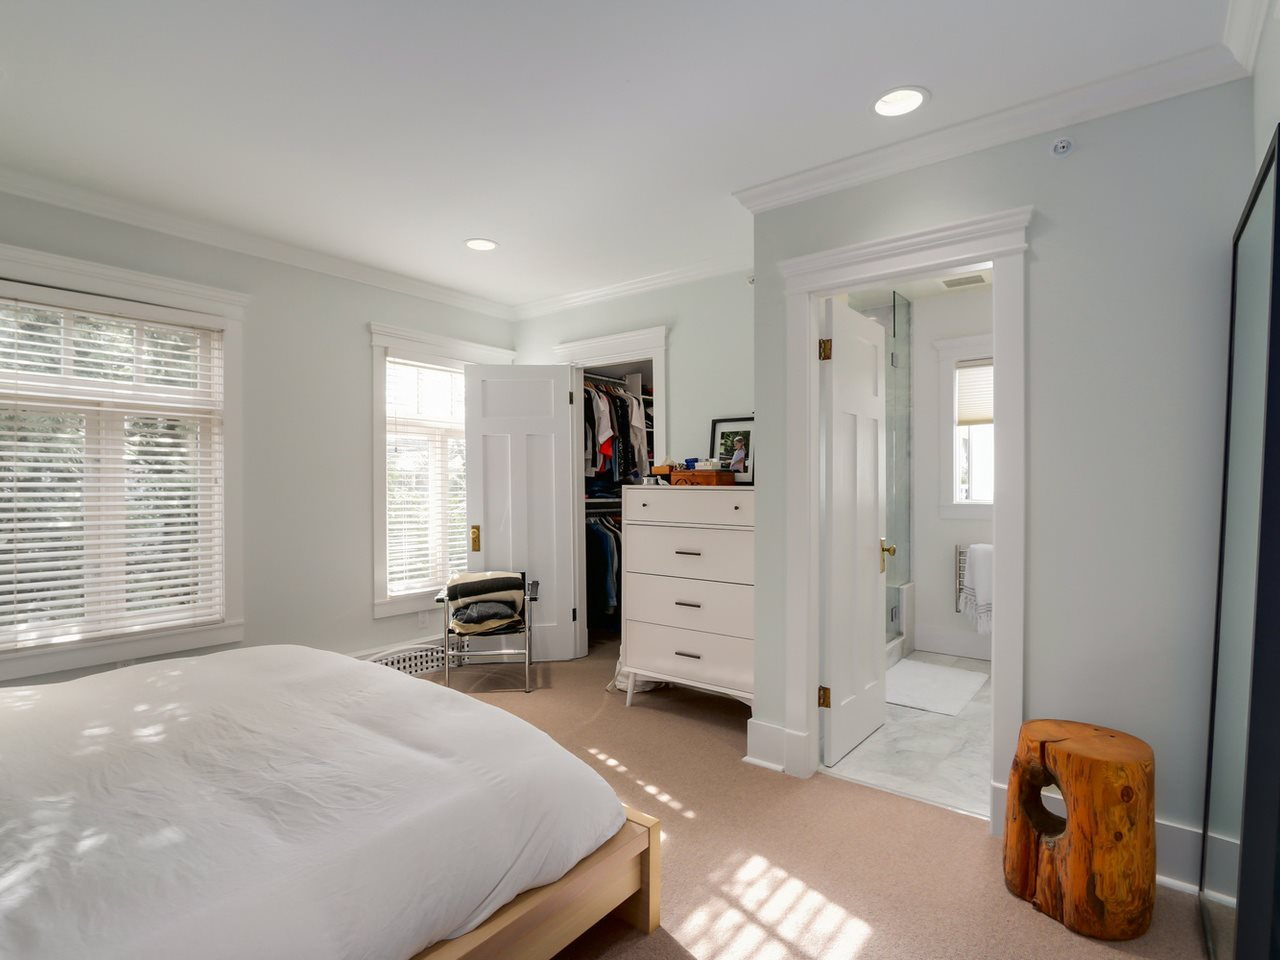 Photo 12: 1835 COLLINGWOOD STREET in Vancouver: Kitsilano House for sale (Vancouver West)  : MLS(r) # R2039694